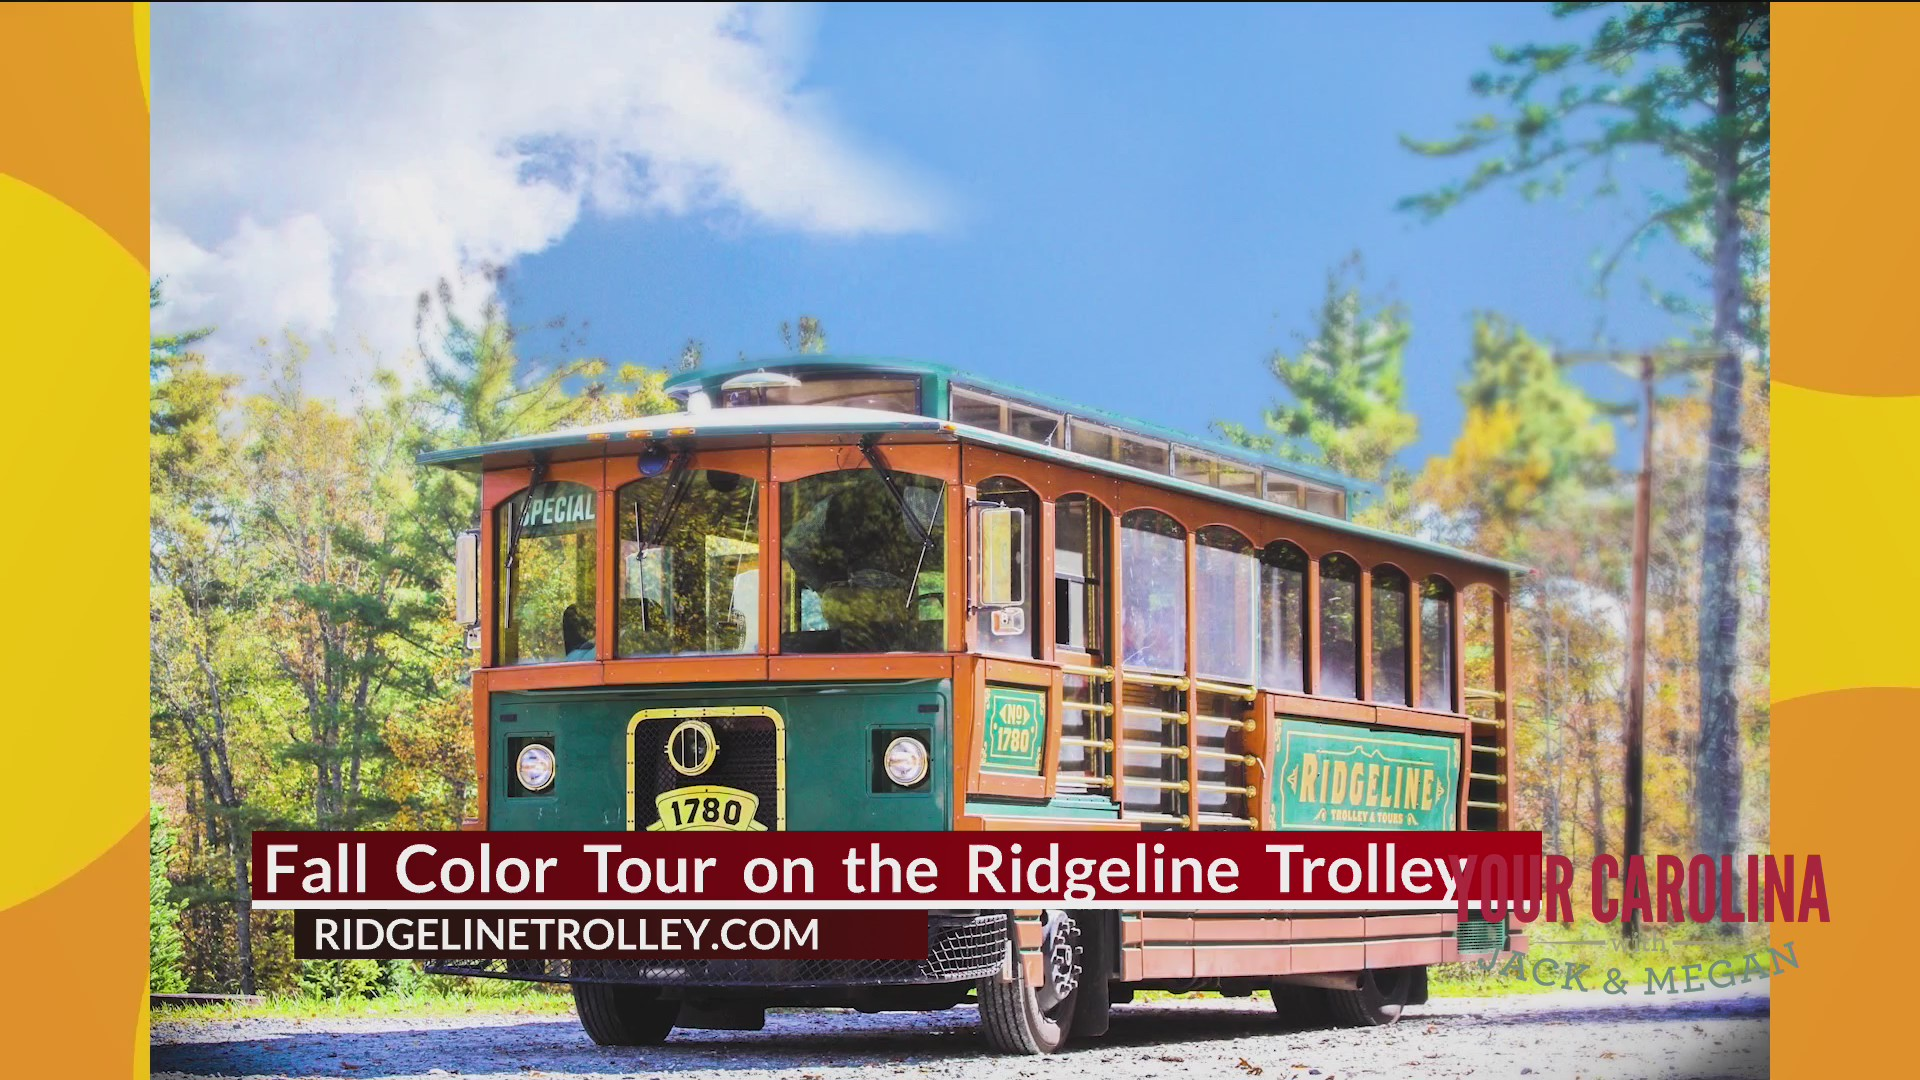 Fall Color Tour on the Ridgeline Trolley